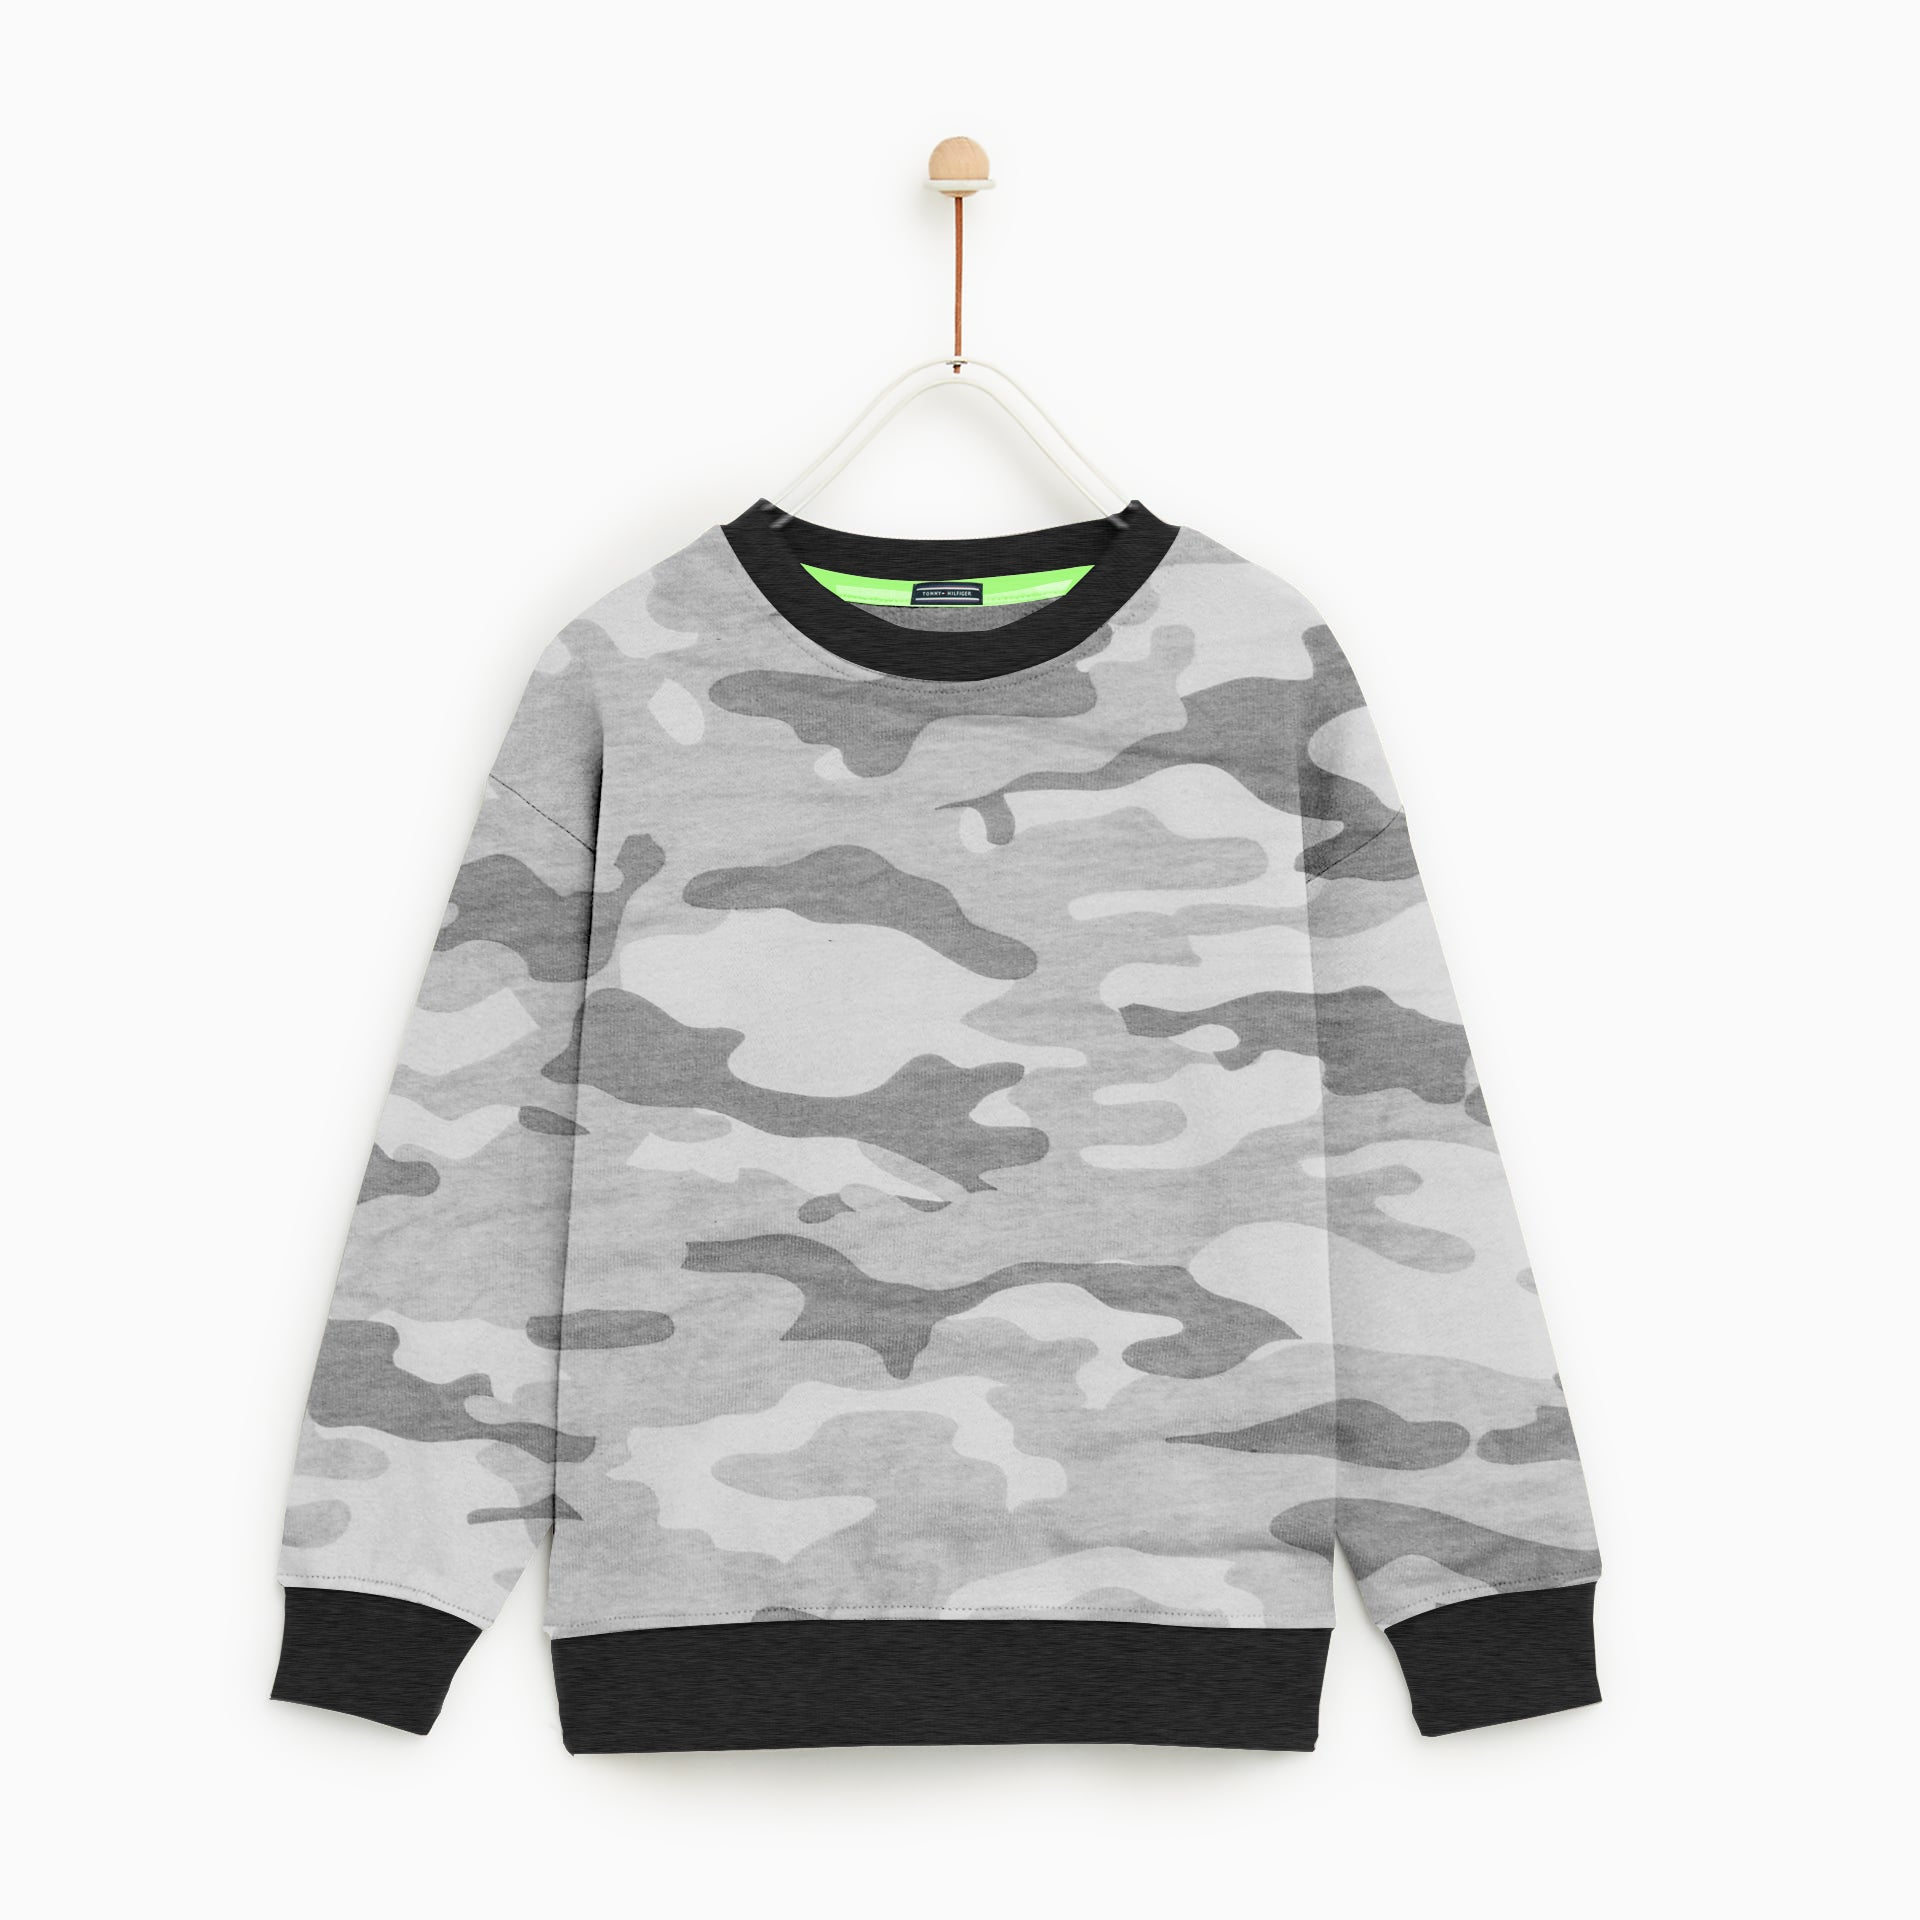 Tommy Hilfiger Crew Neck Single Jersey Sweatshirt For Kids-Light Camo Printed-NA7740